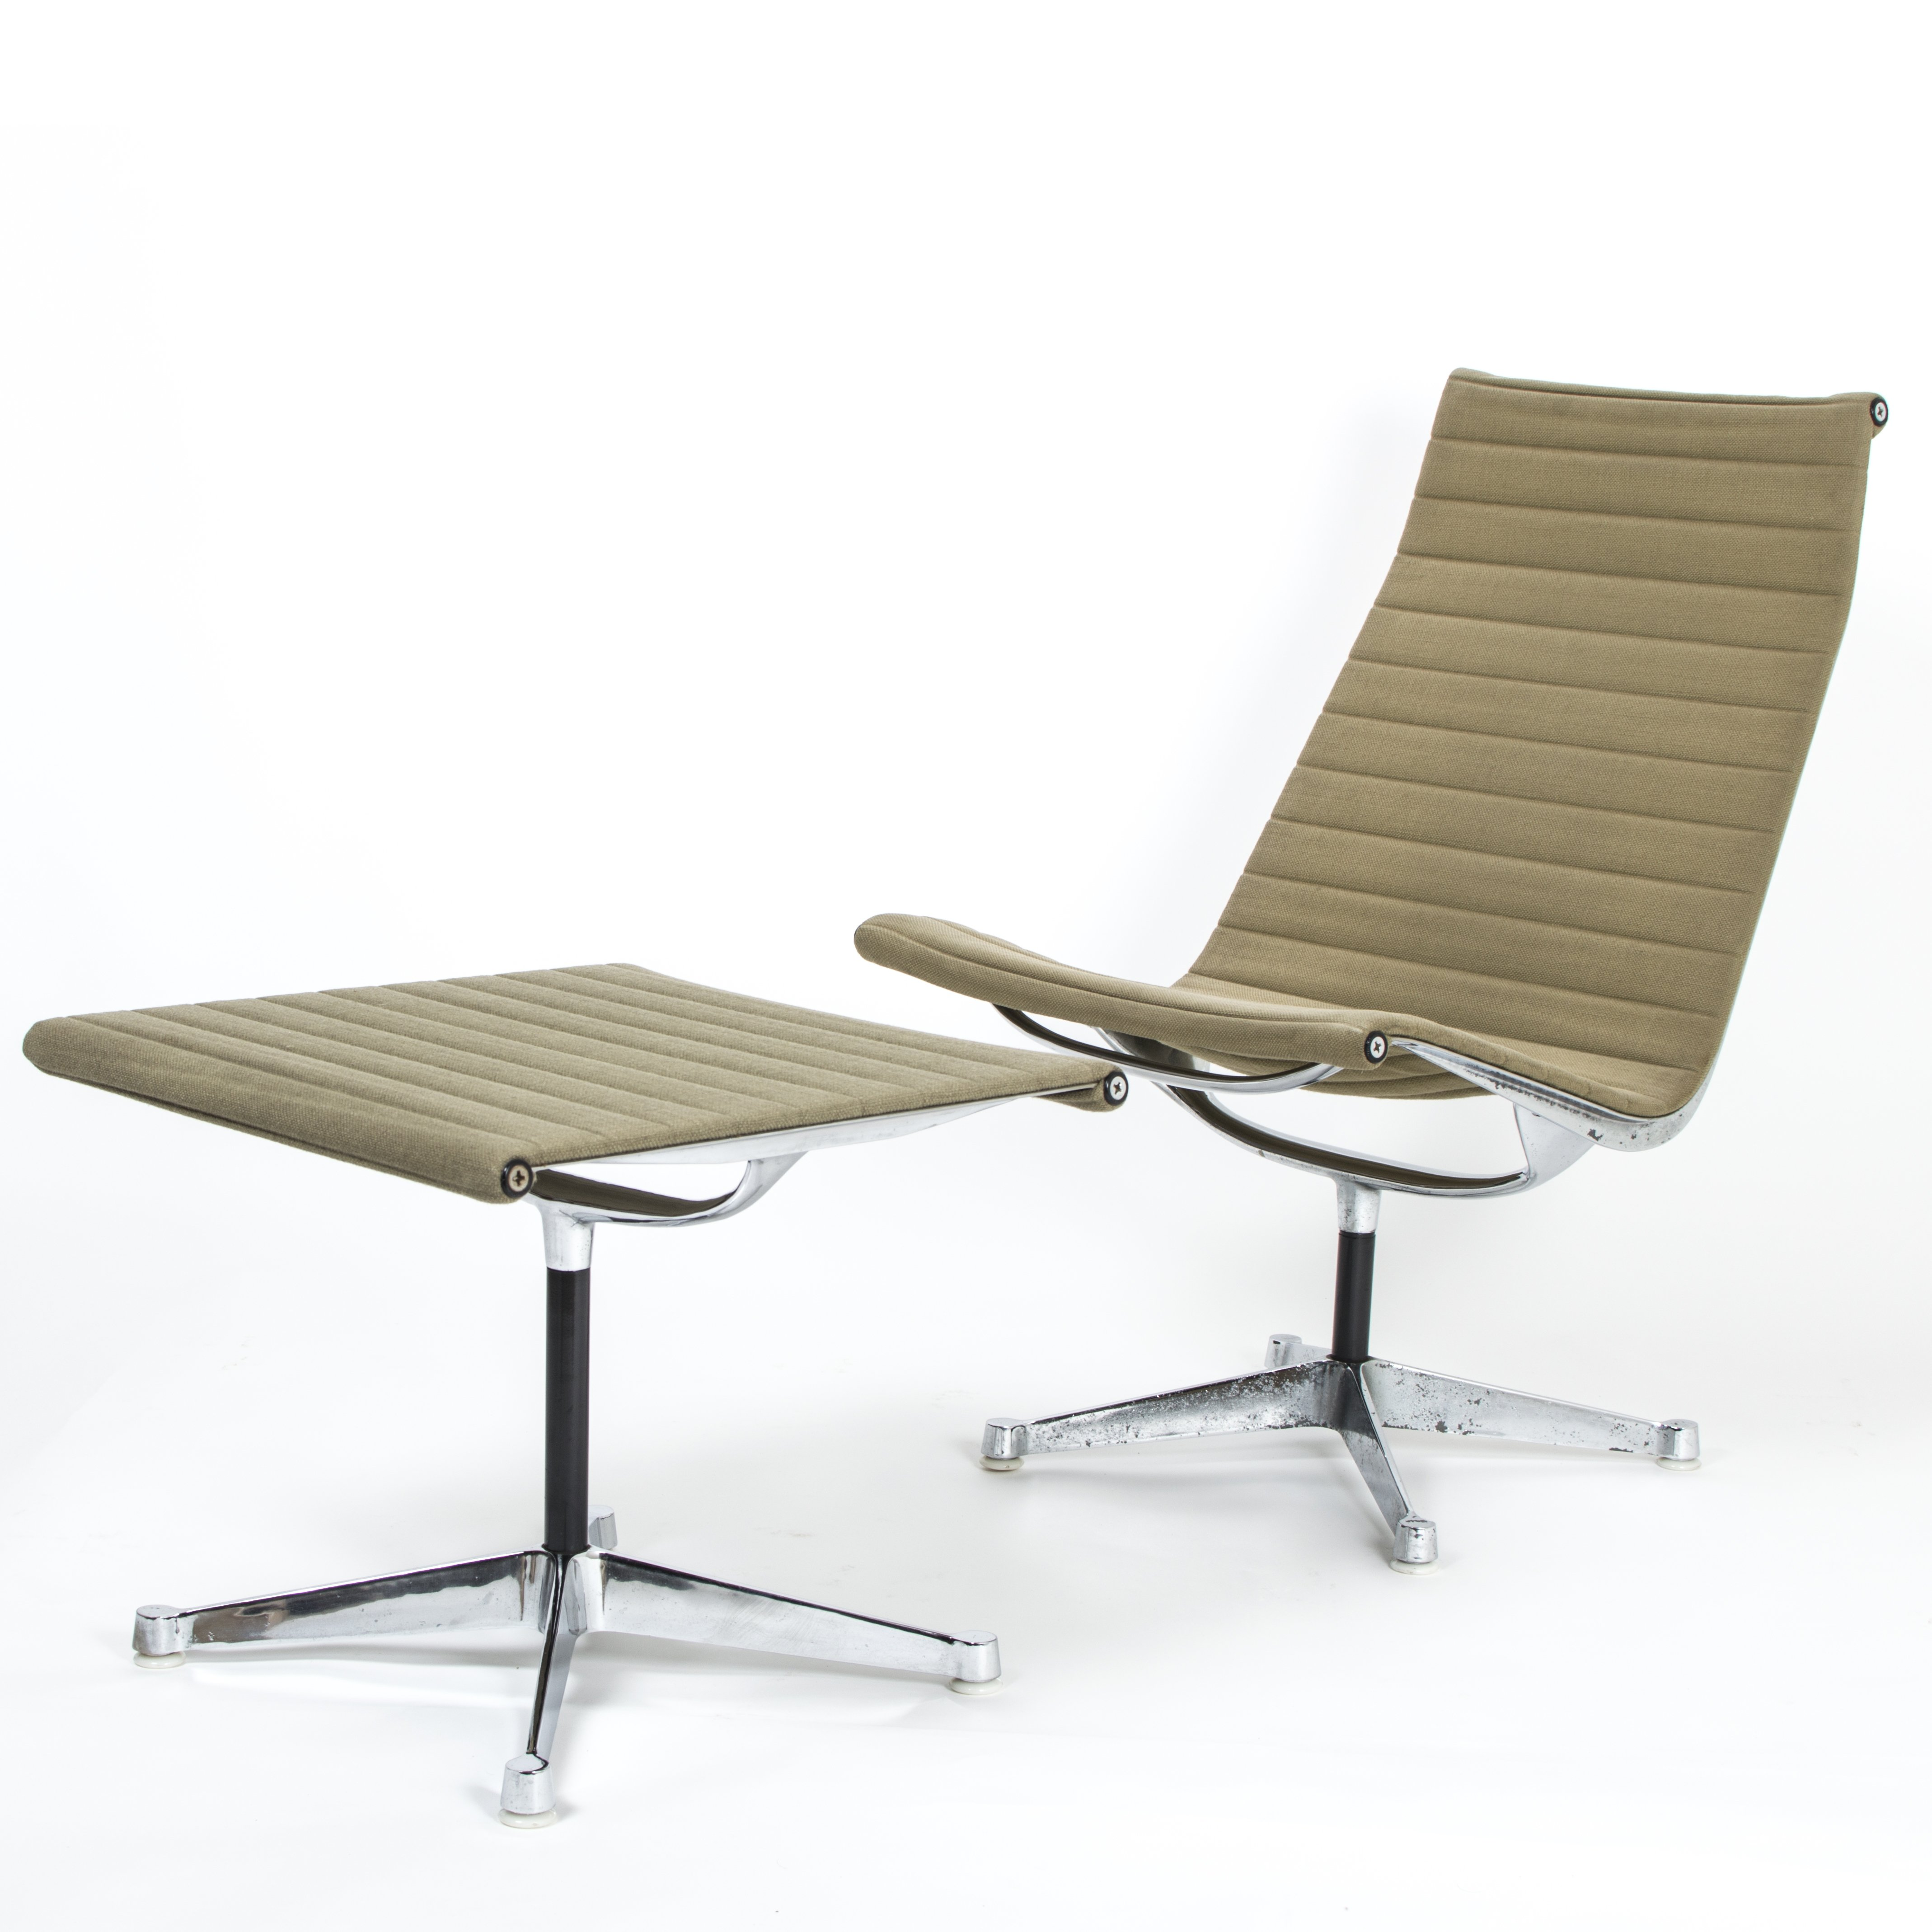 Eames Chairs Qld Herman Miller Ea116 And Ea125 Aluminium Chair And Ottoman By